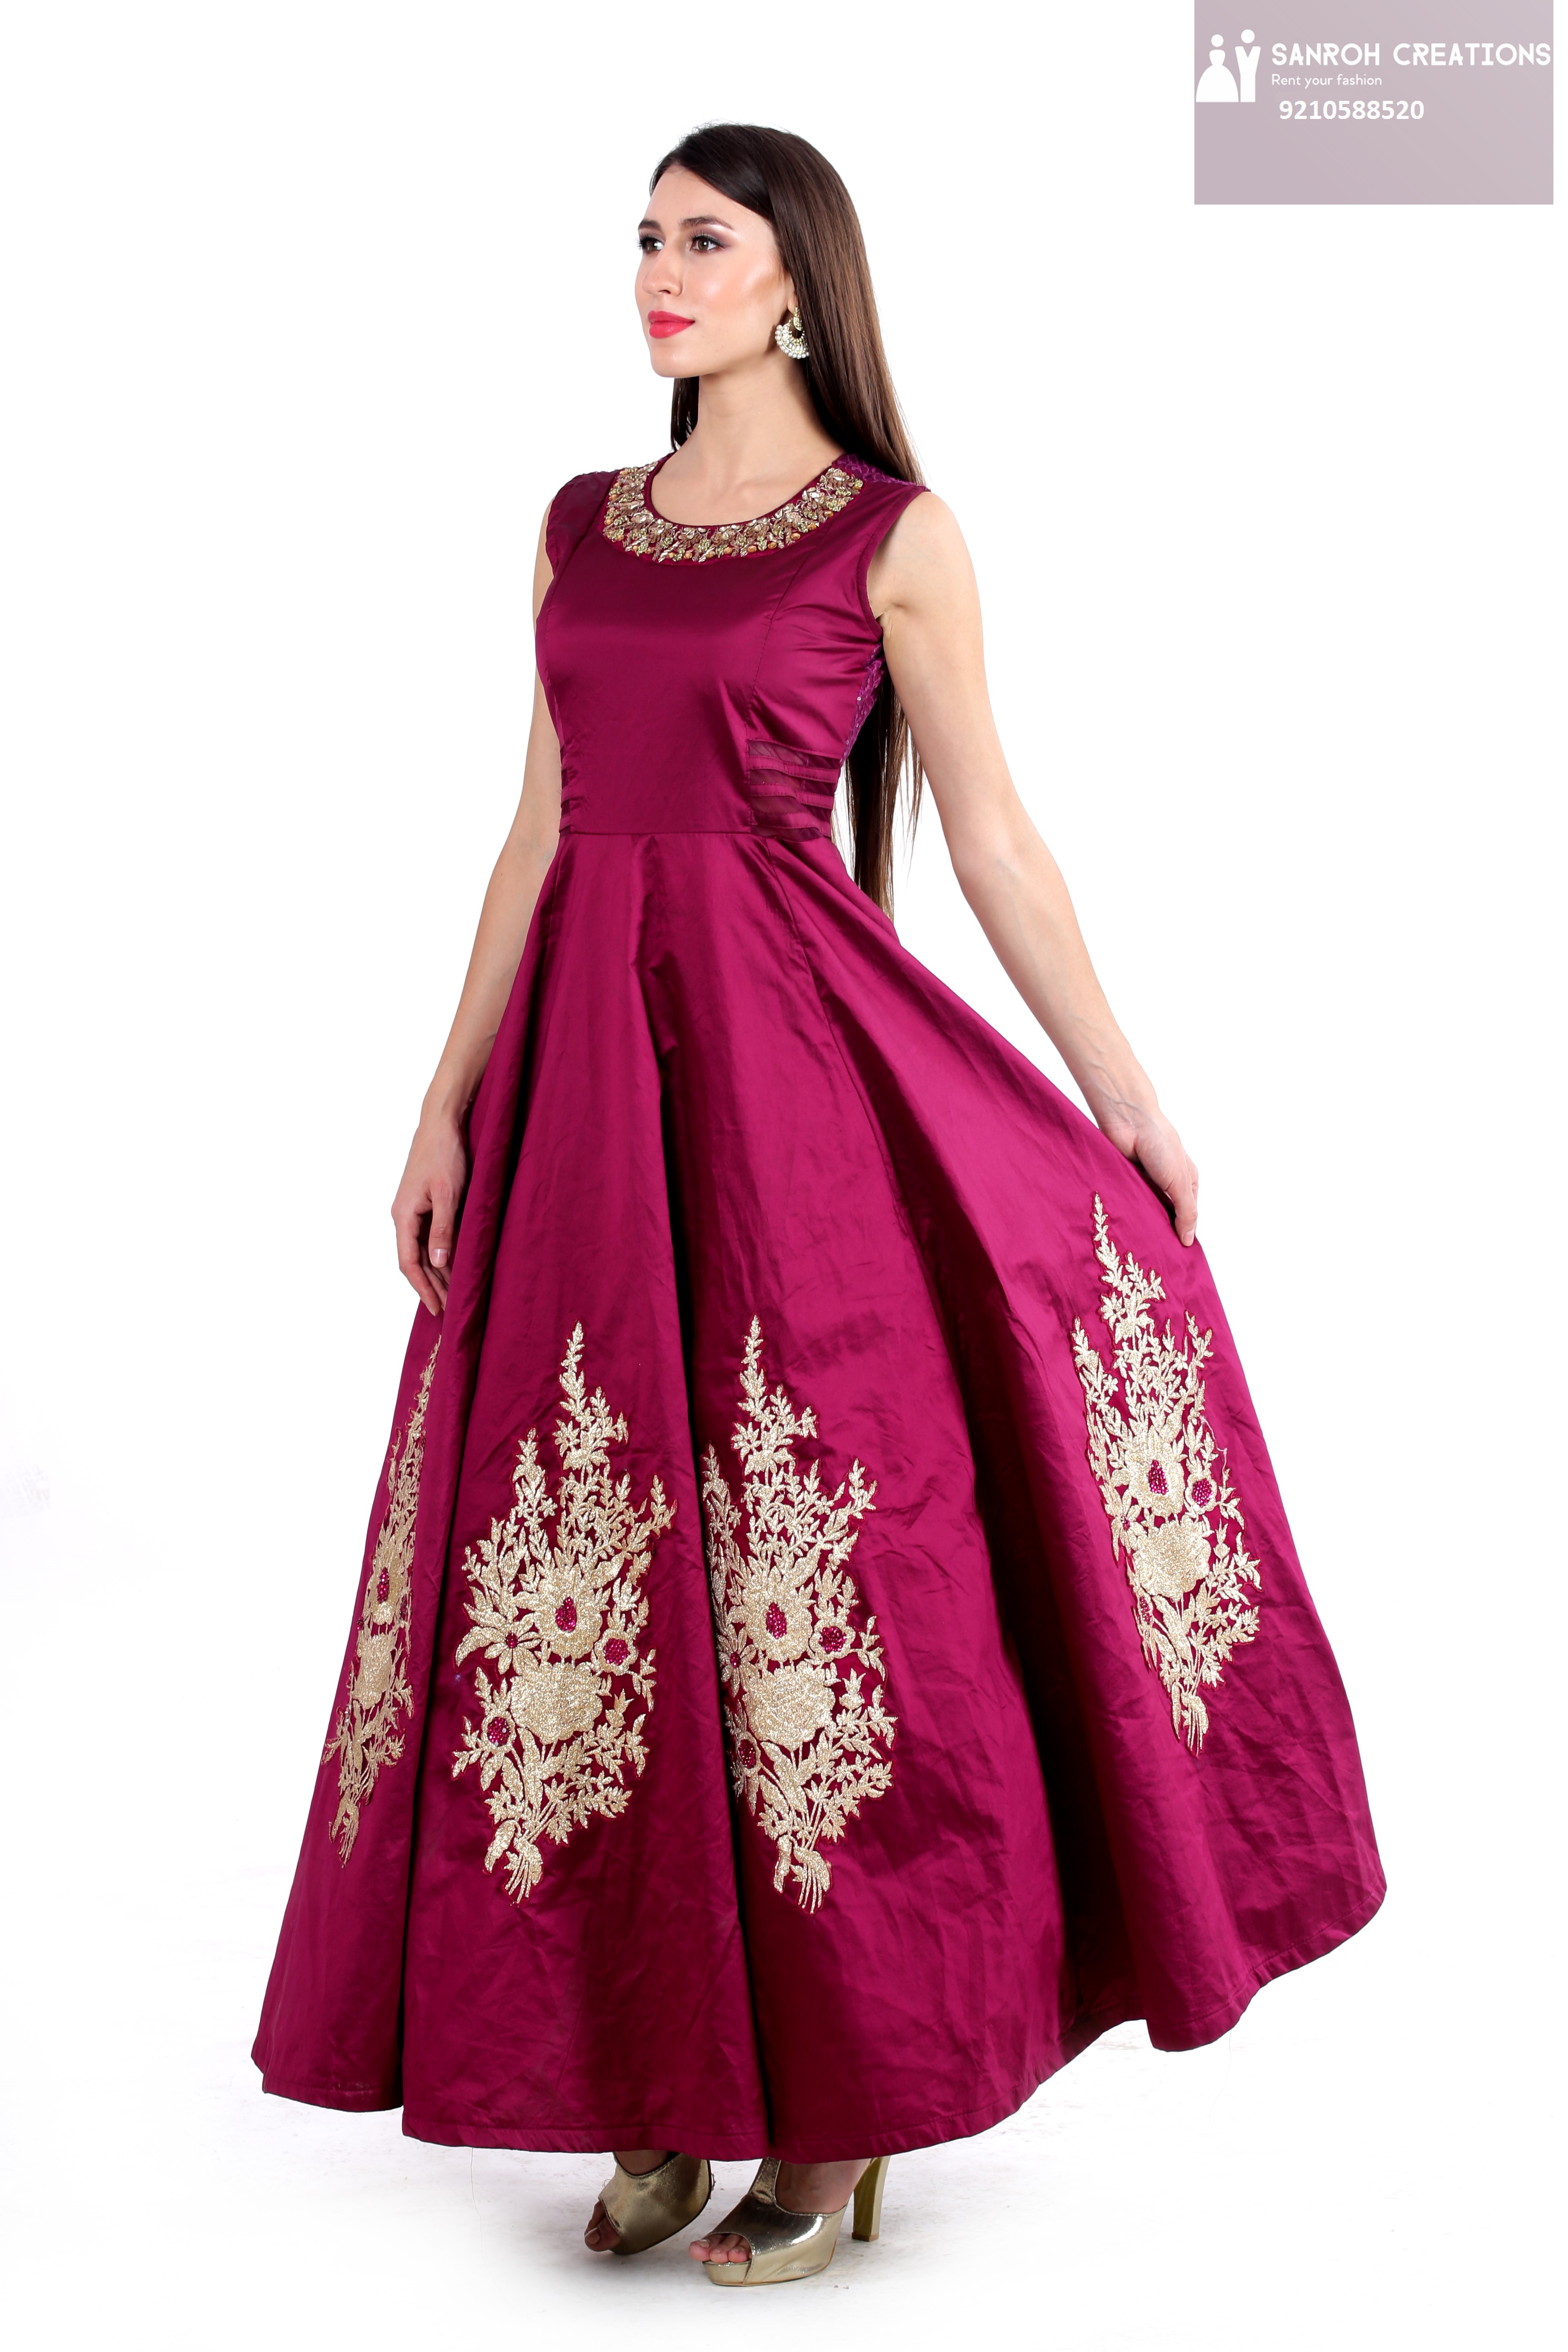 dresses for girls on rent in Gurgaon Sector 50